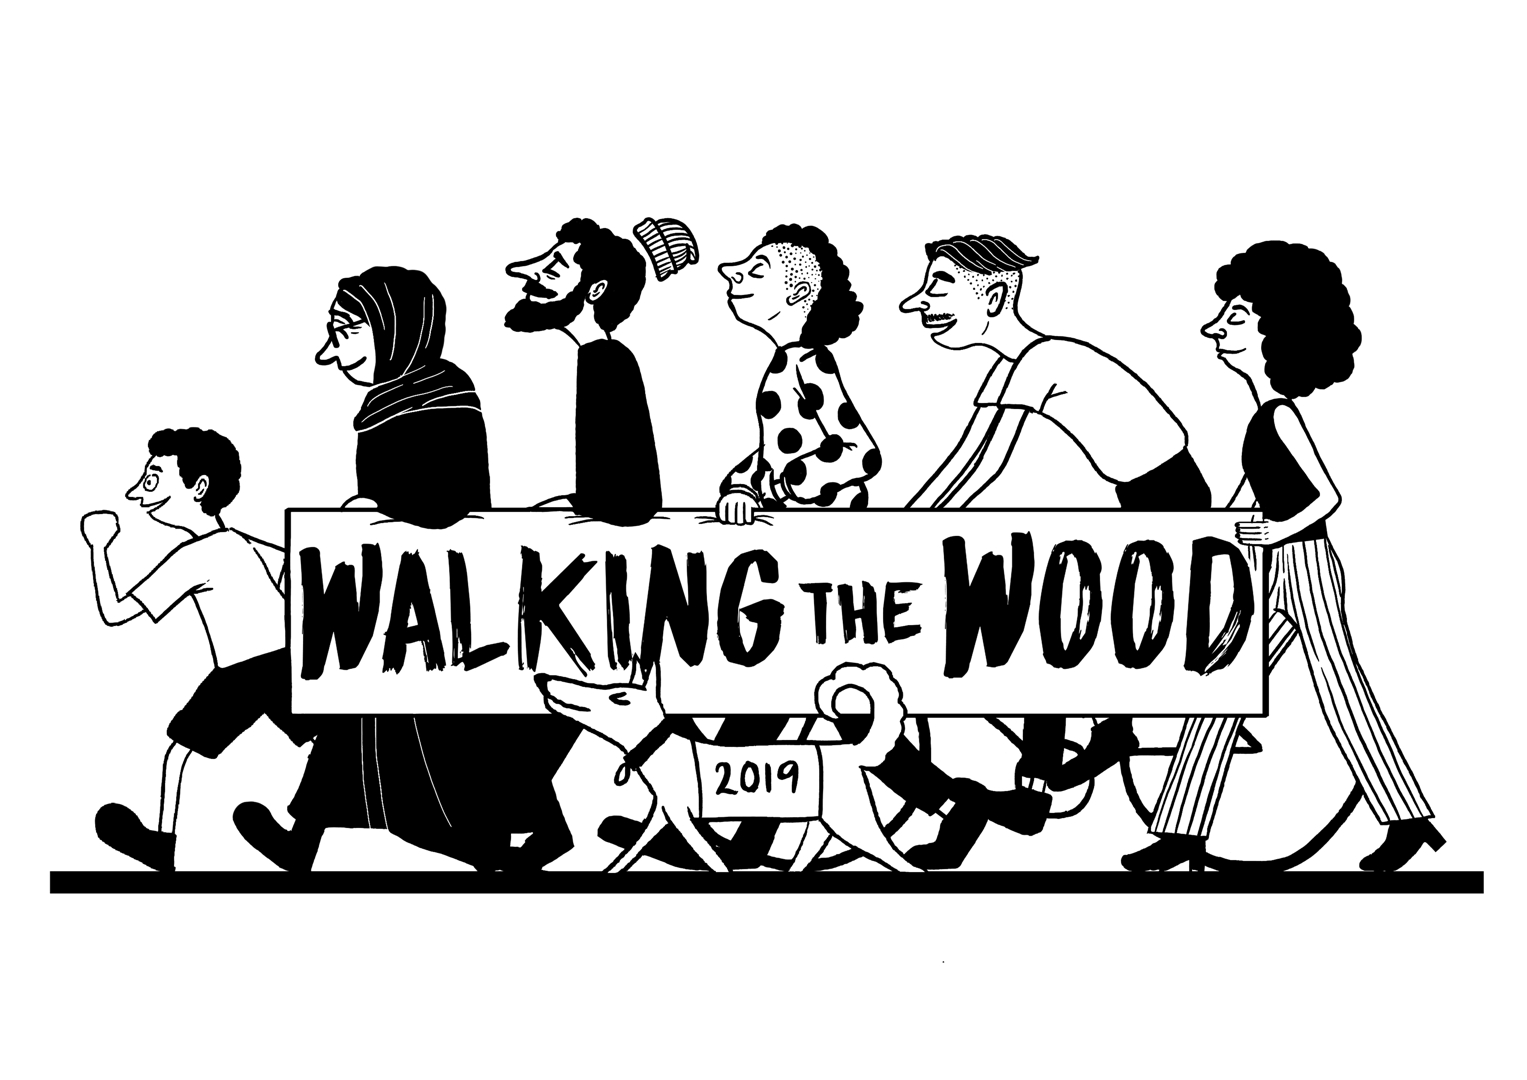 Walking the Wood image